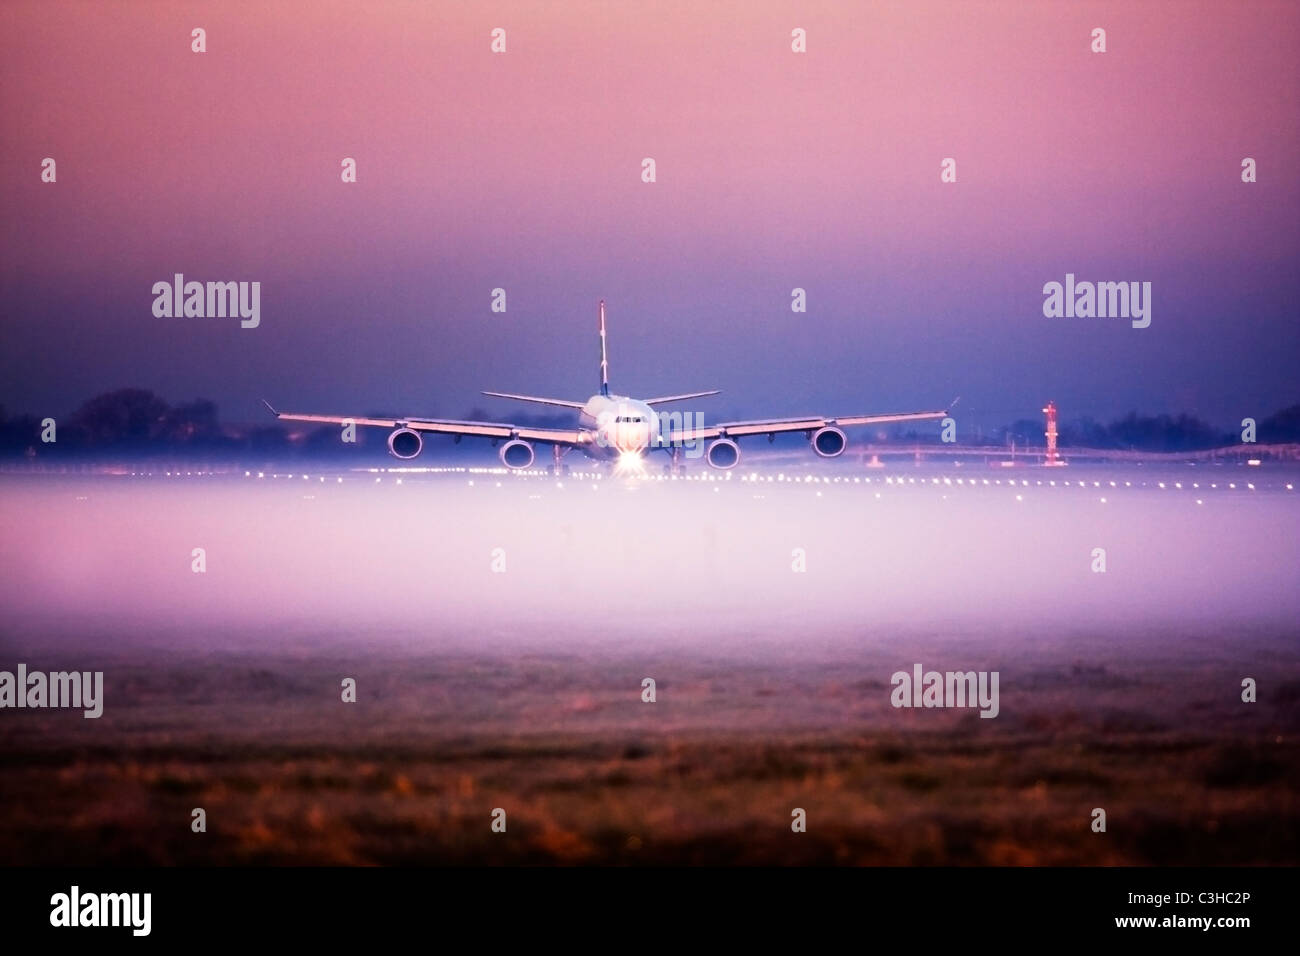 Airplane in the fog at London Heathrow Airport, UK Stock Photo